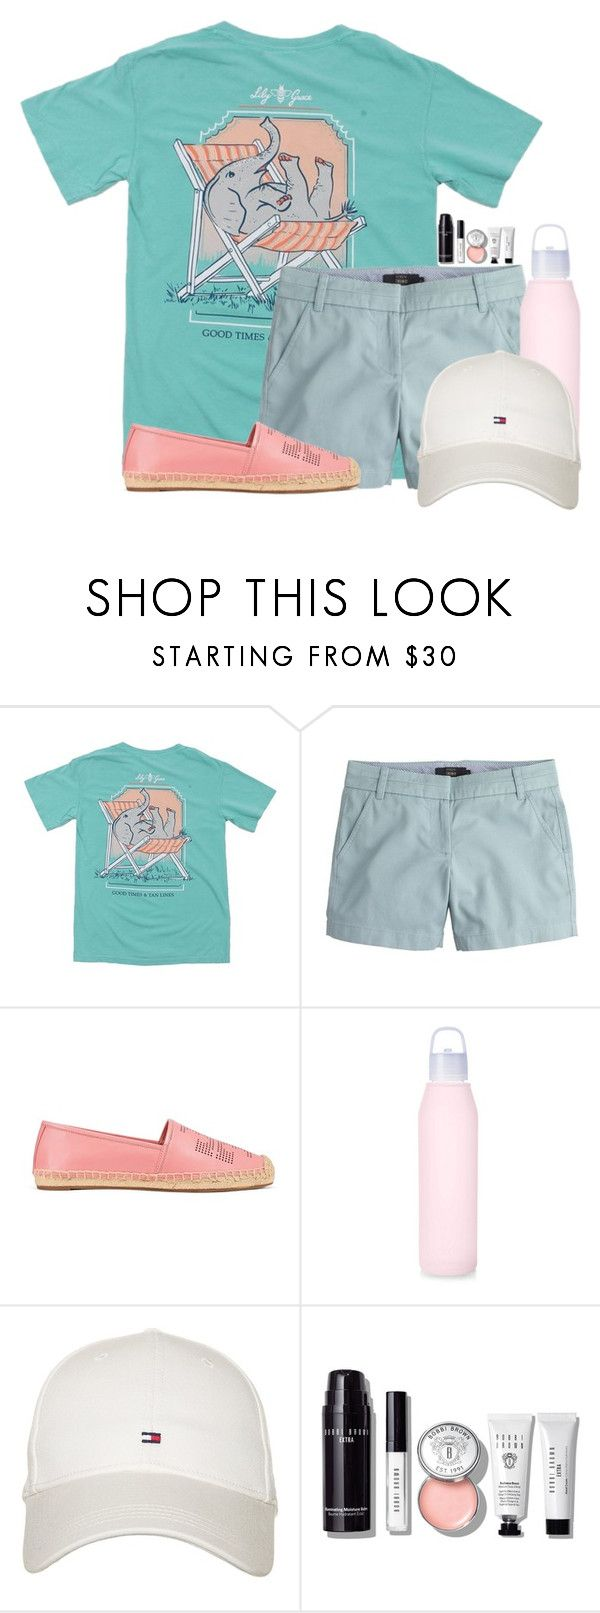 """Watching Little Big Shots"" by flroasburn ❤ liked on Polyvore featuring J.Crew, Tory Burch, Tommy Hilfiger and Bobbi Brown Cosmetics"